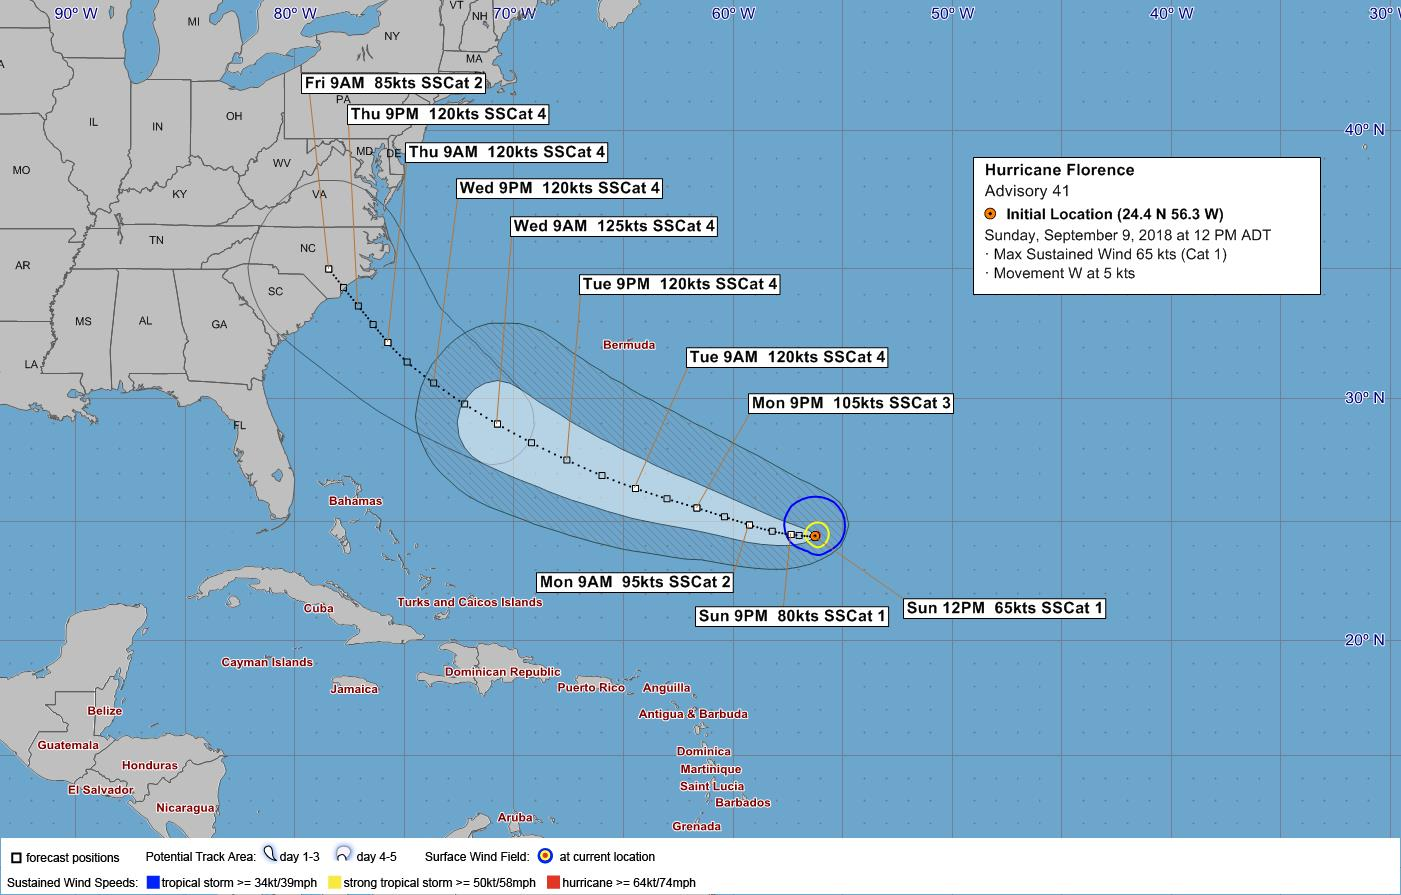 CATEGORY 4: Hurricane Florence Rapidly Intensifies Into Major Hurricane